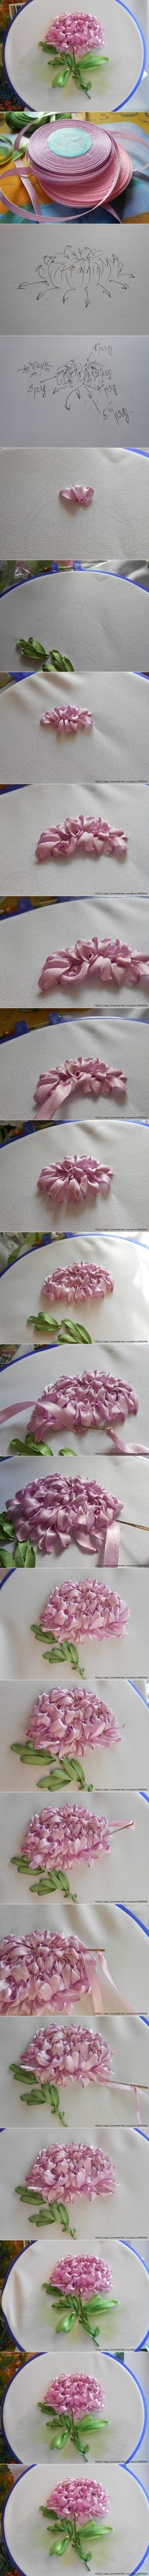 ribbon embroidery chrysanthemum tutorial